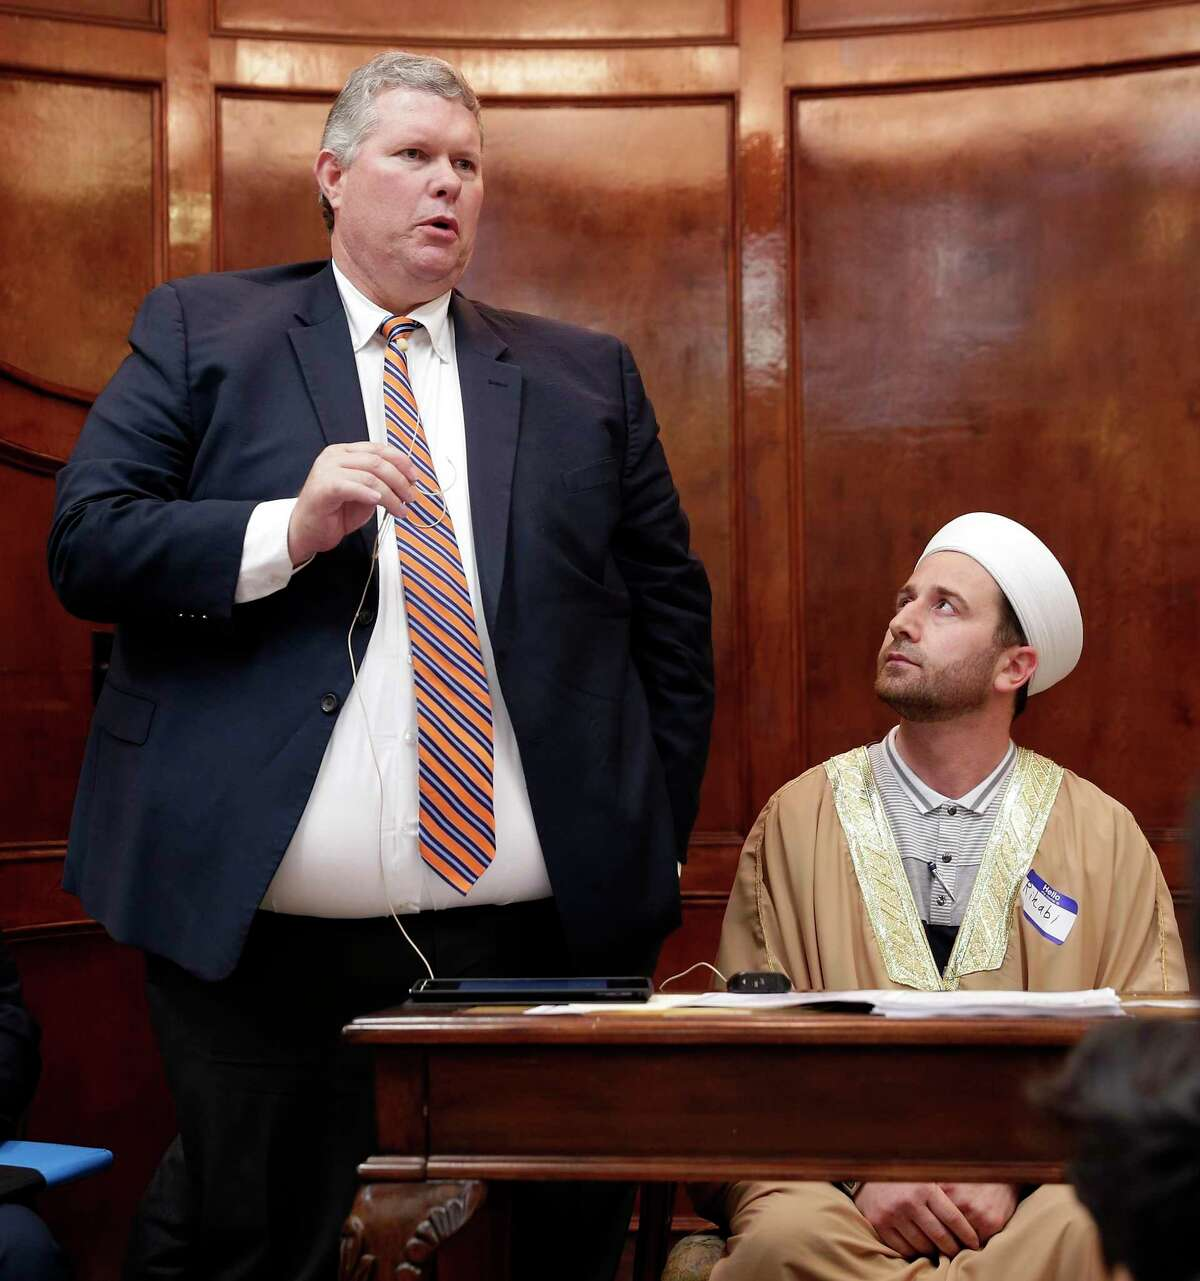 """Craig Sorneson, left, president of the Church of Jesus Christ of Latter-day Saints, speaks as Imam Mohammed Rihabi, left, listens during the """"Standing As One Healing After New Zealand"""" program, a prayer and remarks vigil with community and local faith leaders at The Woodlands Muslim Community at Masjid Al-Ansaar Mosque Friday, March, 22, 2019 in The Woodlands, TX. The communities have come together again in the wake of the death of George Floyd to discuss their roles in addressing racial inequality."""